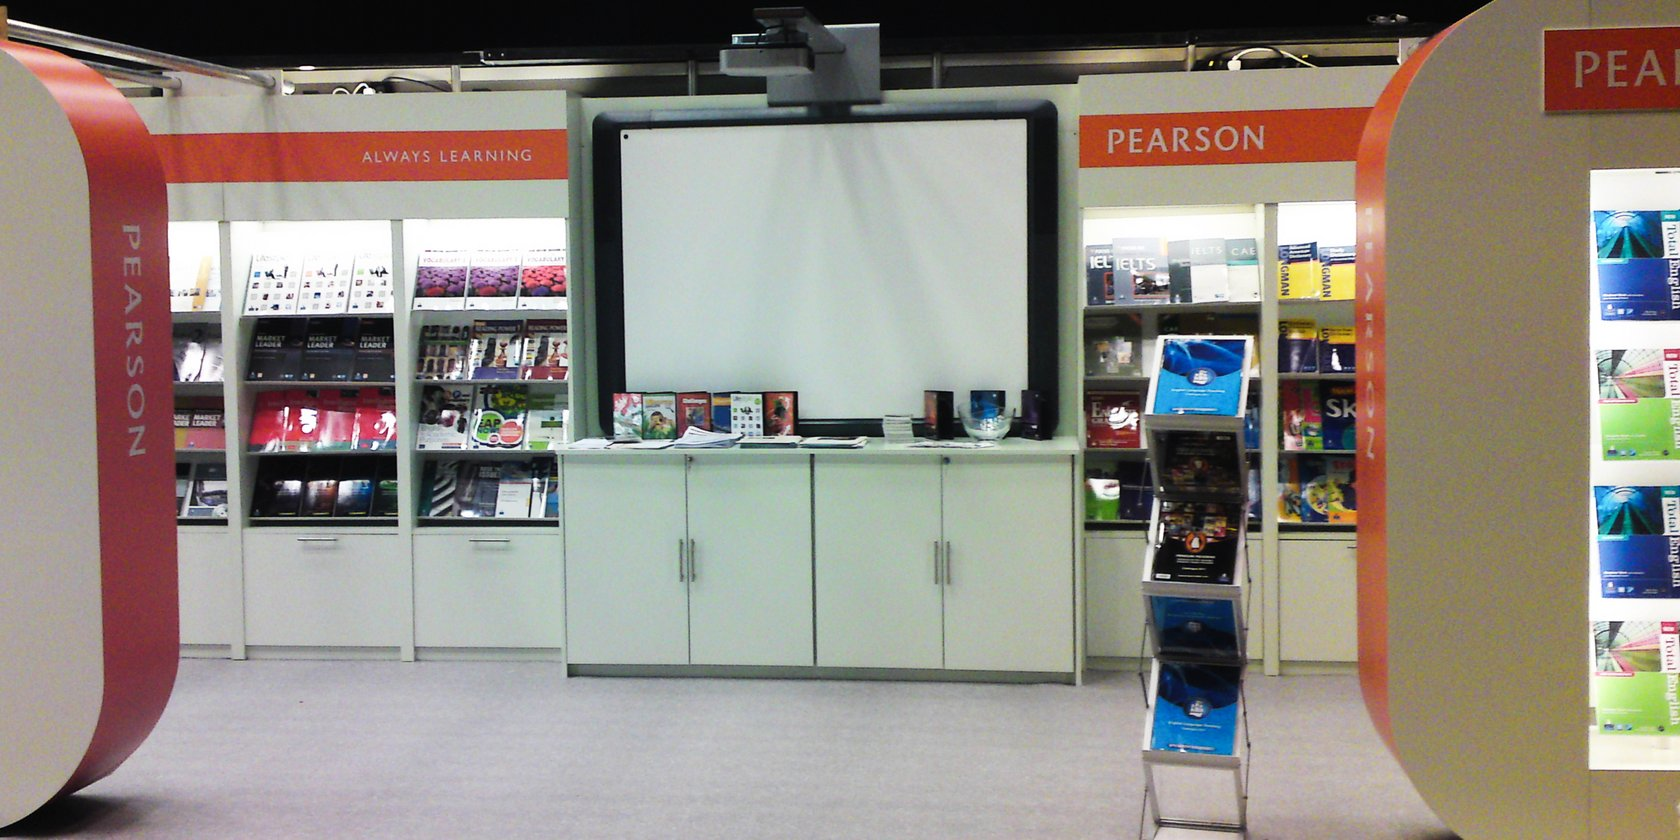 Custom Built Exhibition Stand for Pearson